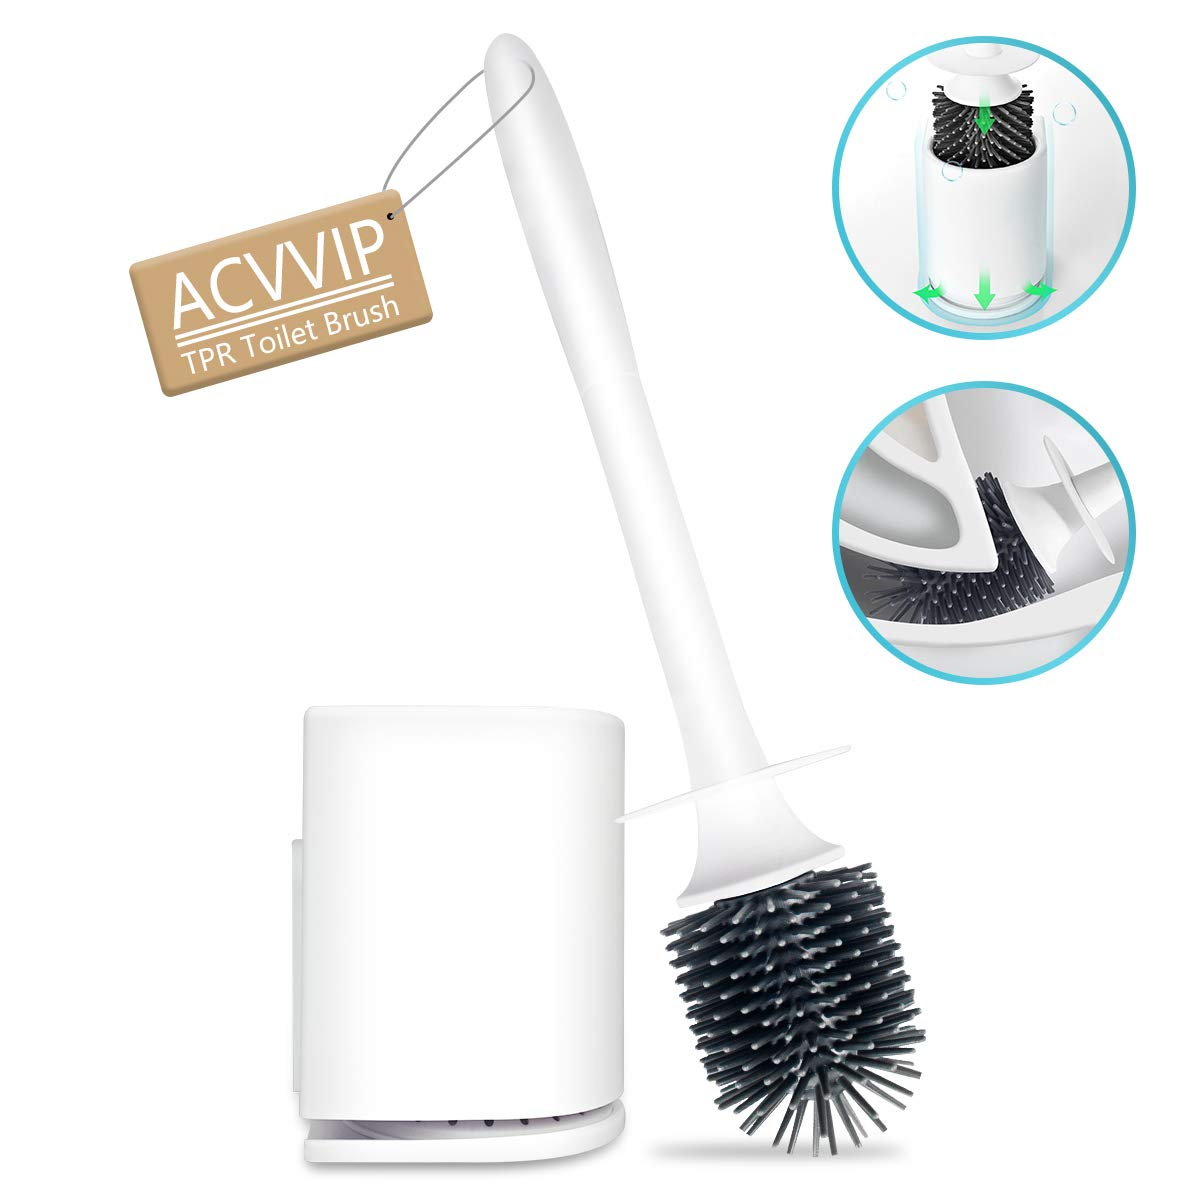 ACVVIP Toilet Brush and Holder, TPR Toilet Bowl Brush with Ventilation Holder for Bathroom Toilet Cleaning - Premium, Long Life Span, Good Grips, Sturdy, Deep Cleaning, Covered Brush (White)